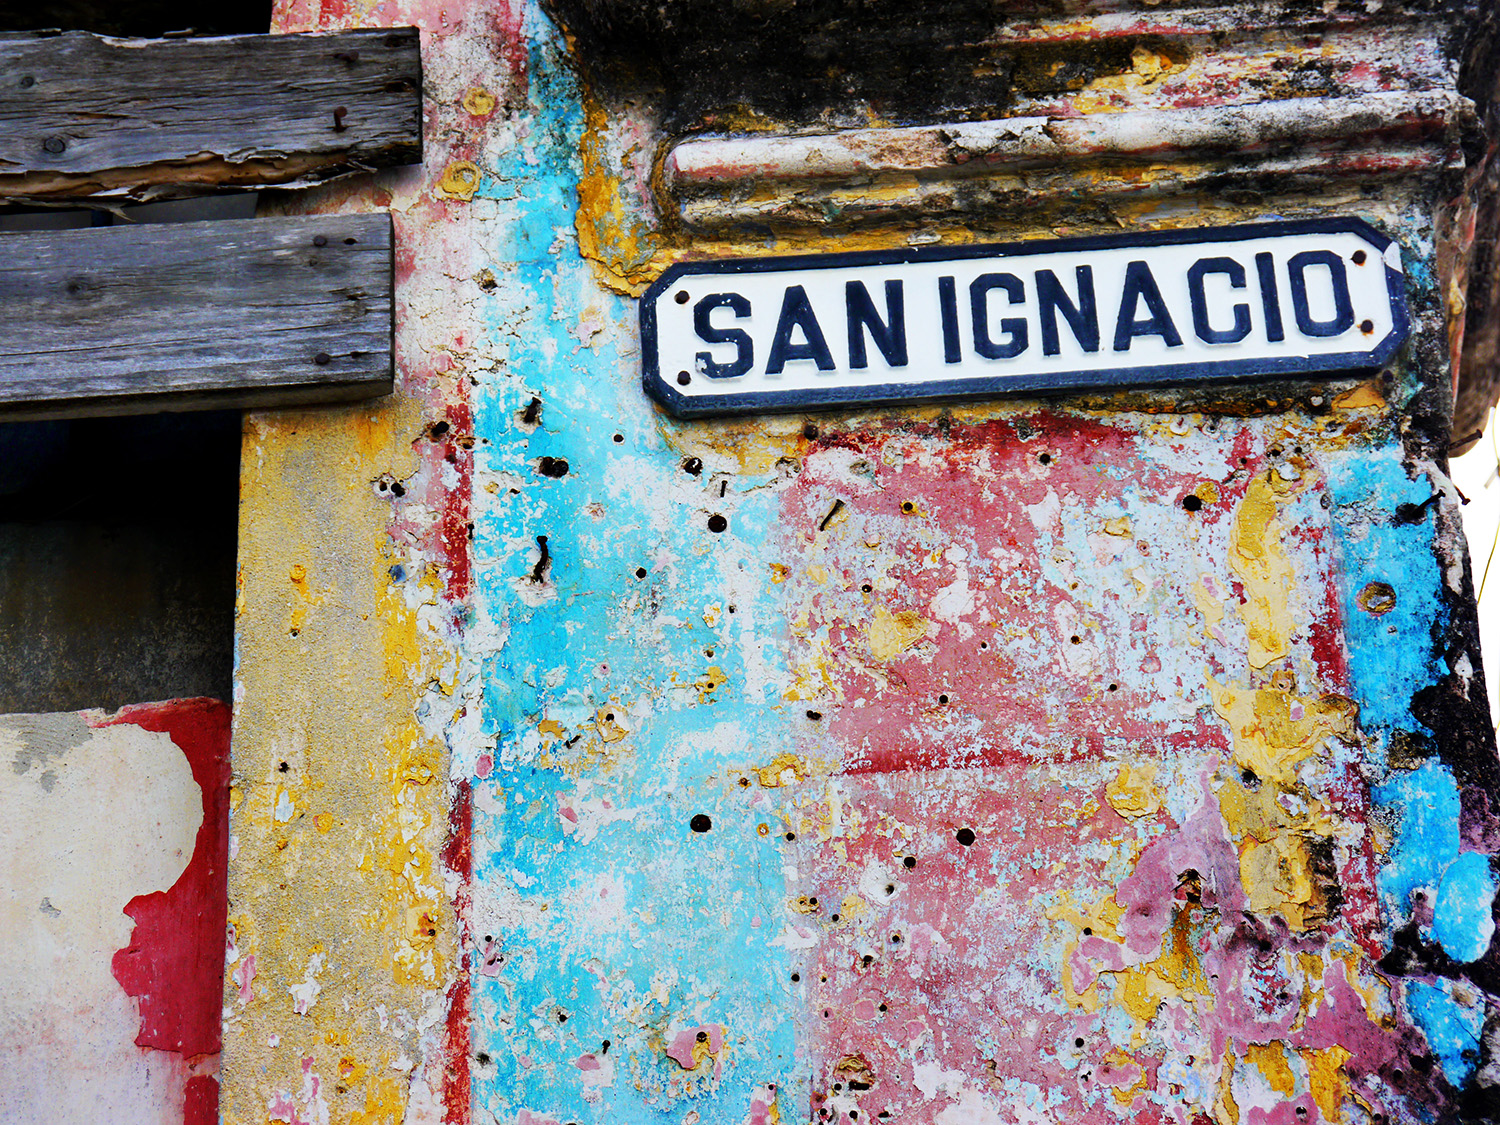 A street sign on a colorful old building.